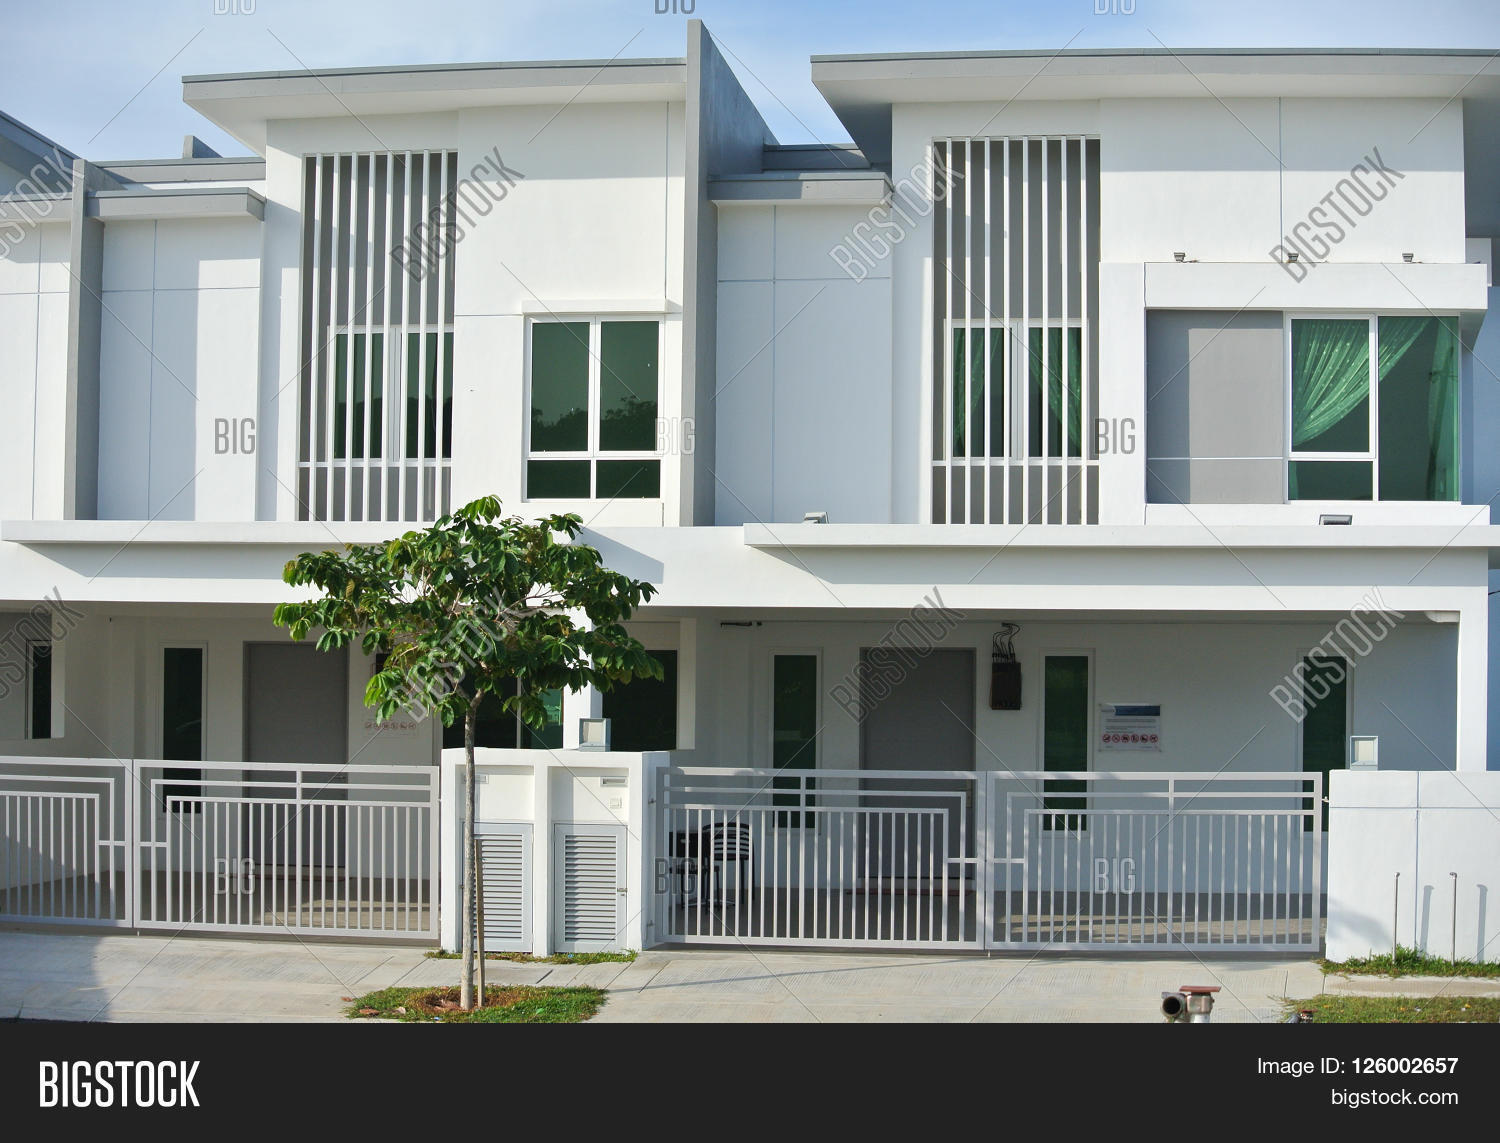 Malacca malaysia january 25 2016 landed and identical new terrace house design in